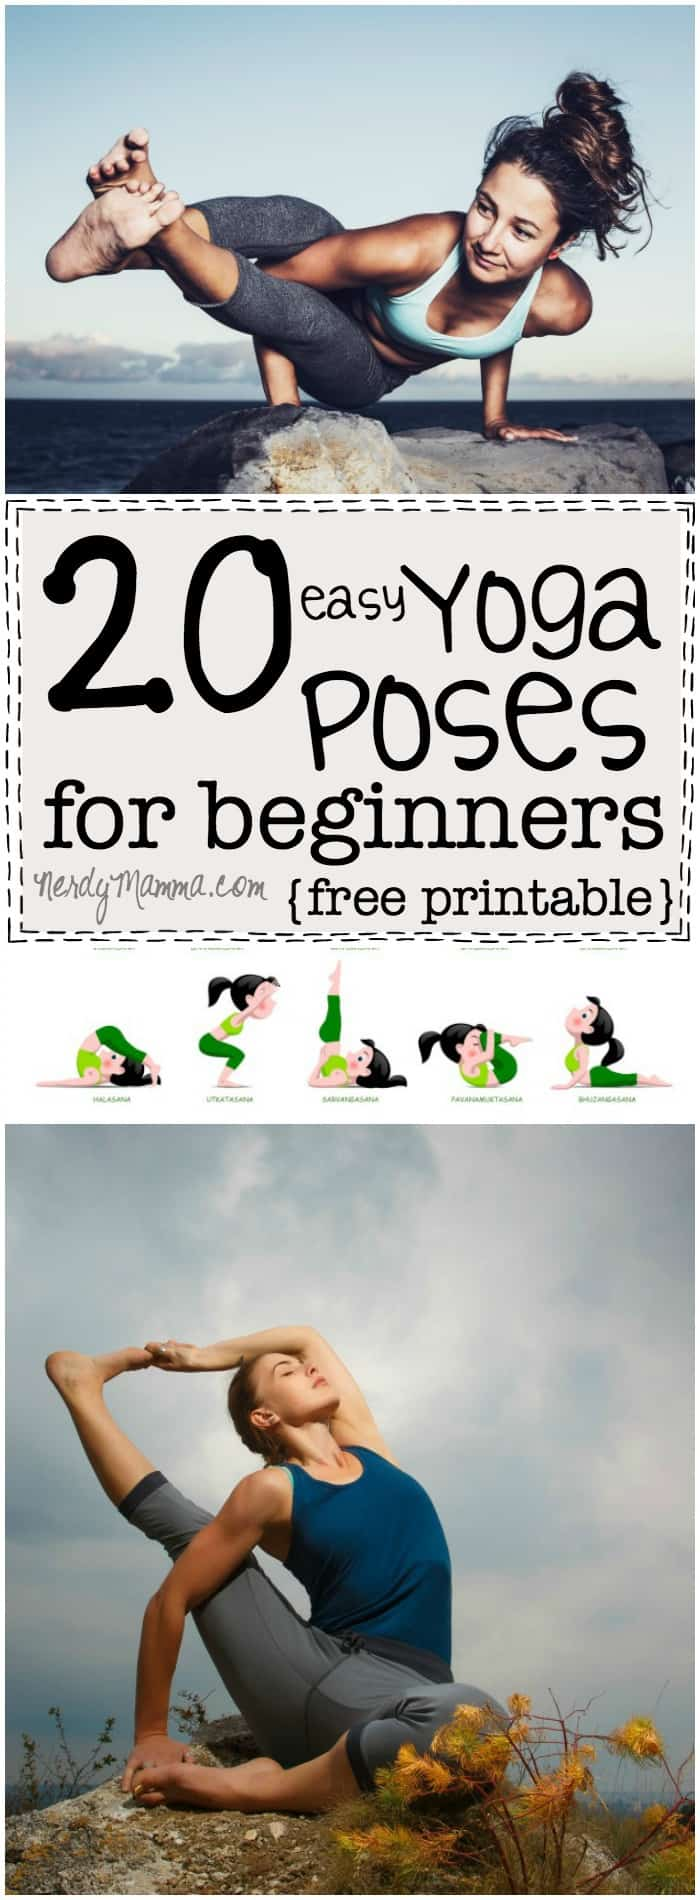 These 20 easy yoga poses are so simple. I didn't realize yoga could be done so--well, easily! LOL! I love it! And the free printable makes it so simple. I can't wait to get started.